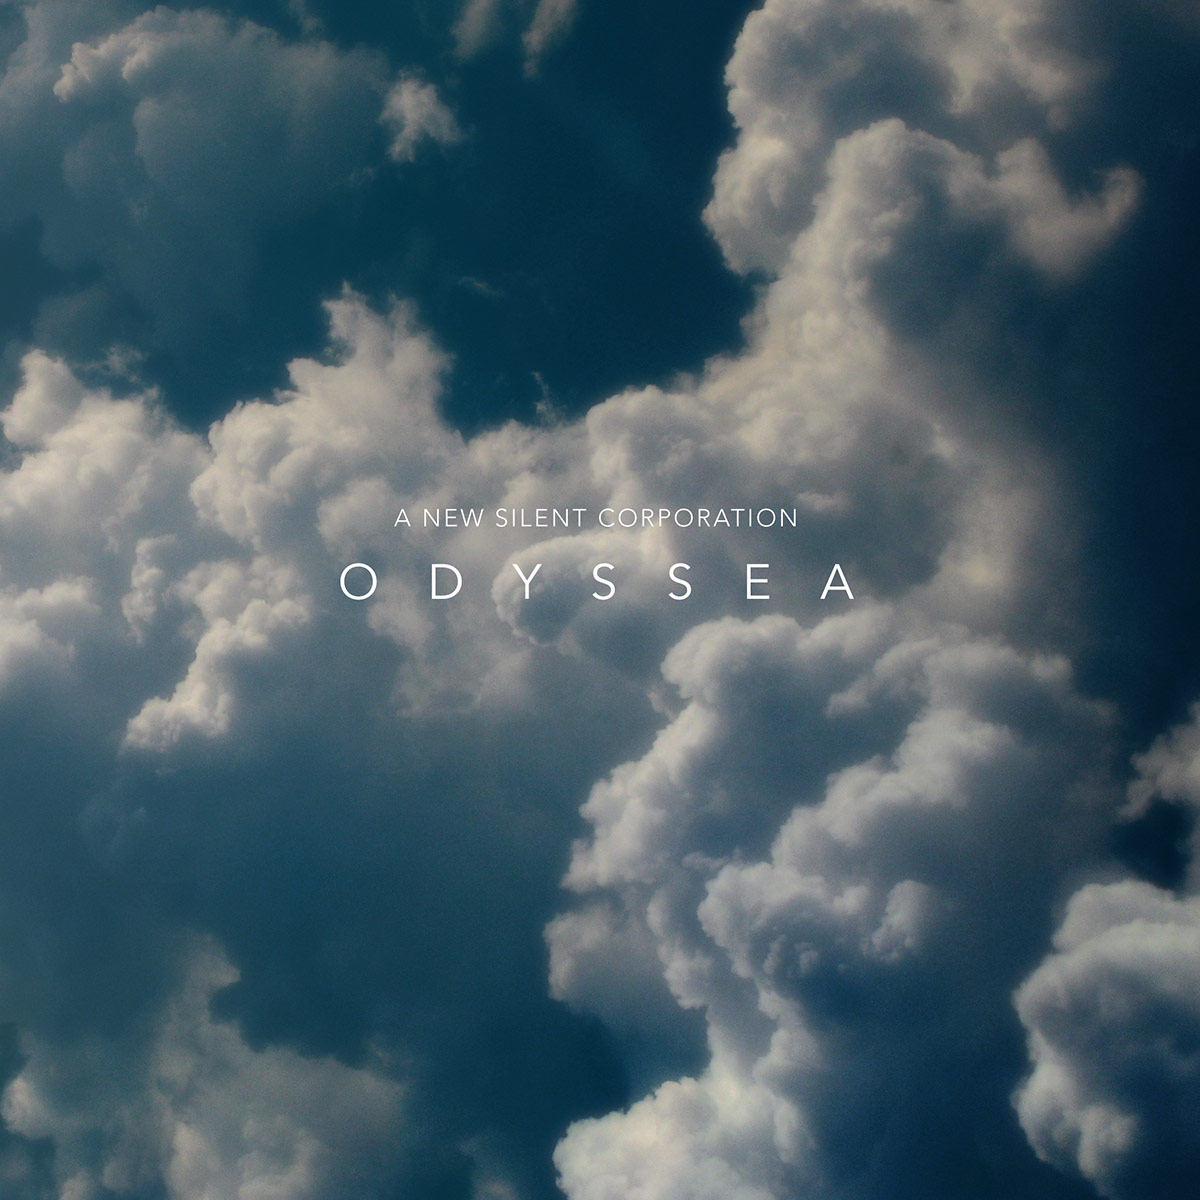 odyssea-cover-1200px